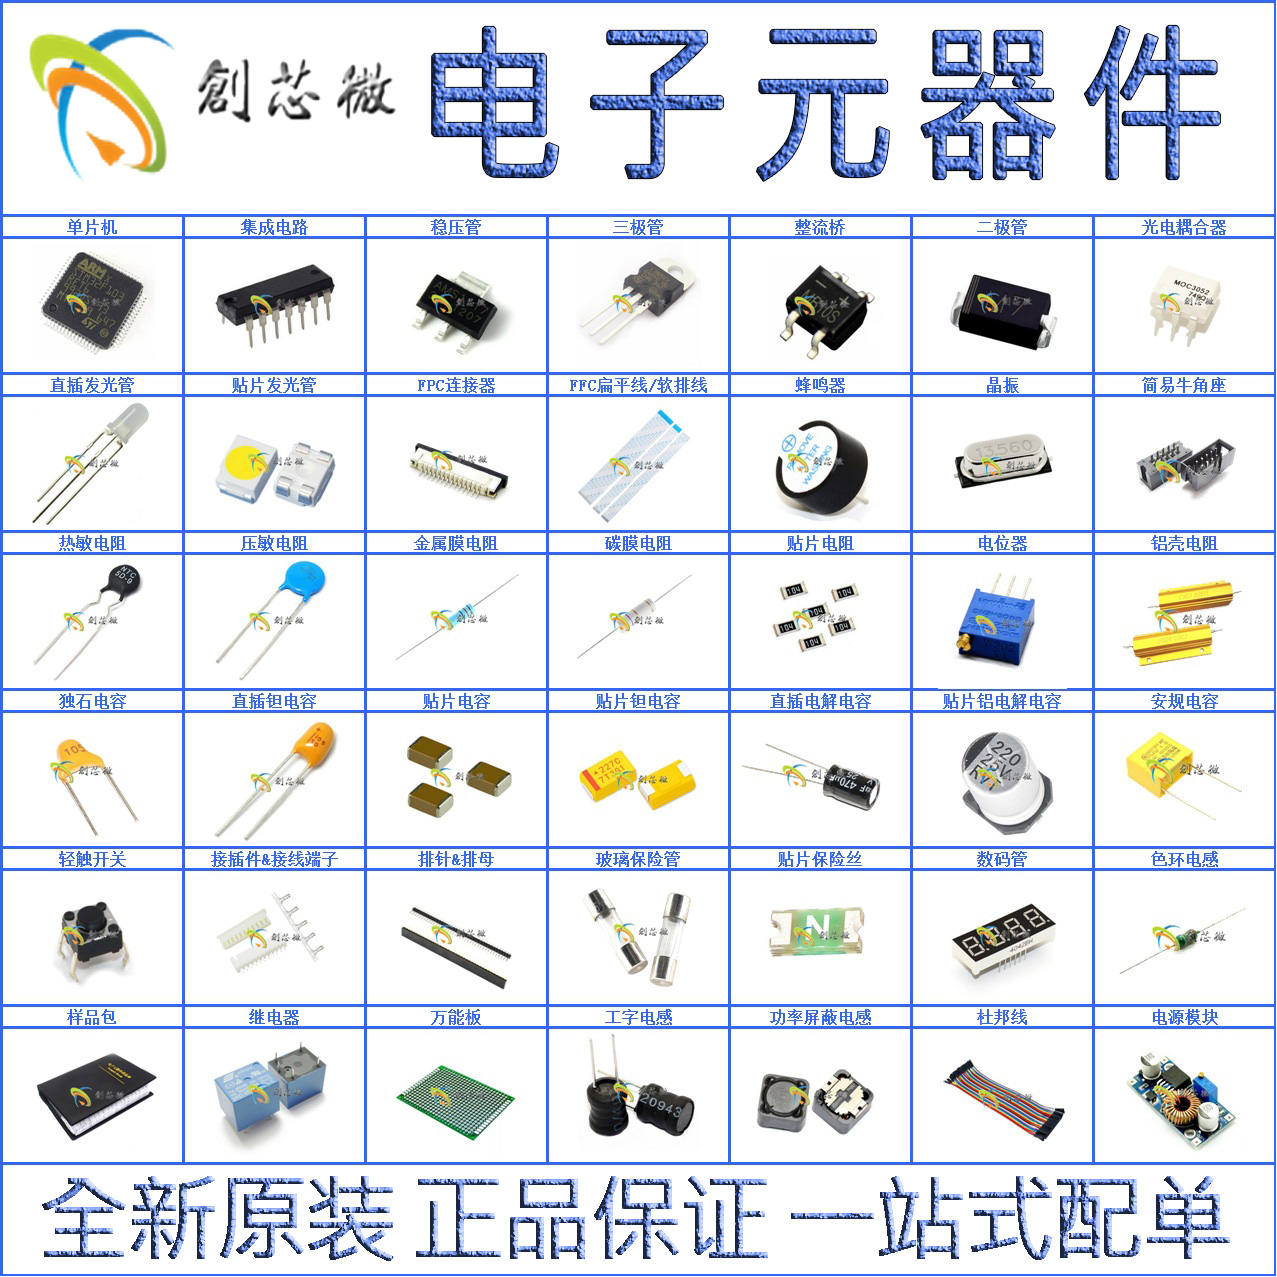 Usd 419 Electronic Components With A Single Integrated Circuit Ic Resistors And Capacitors In Capacitor Chip Resistance Capacitance Crystal Bom Table Material Price